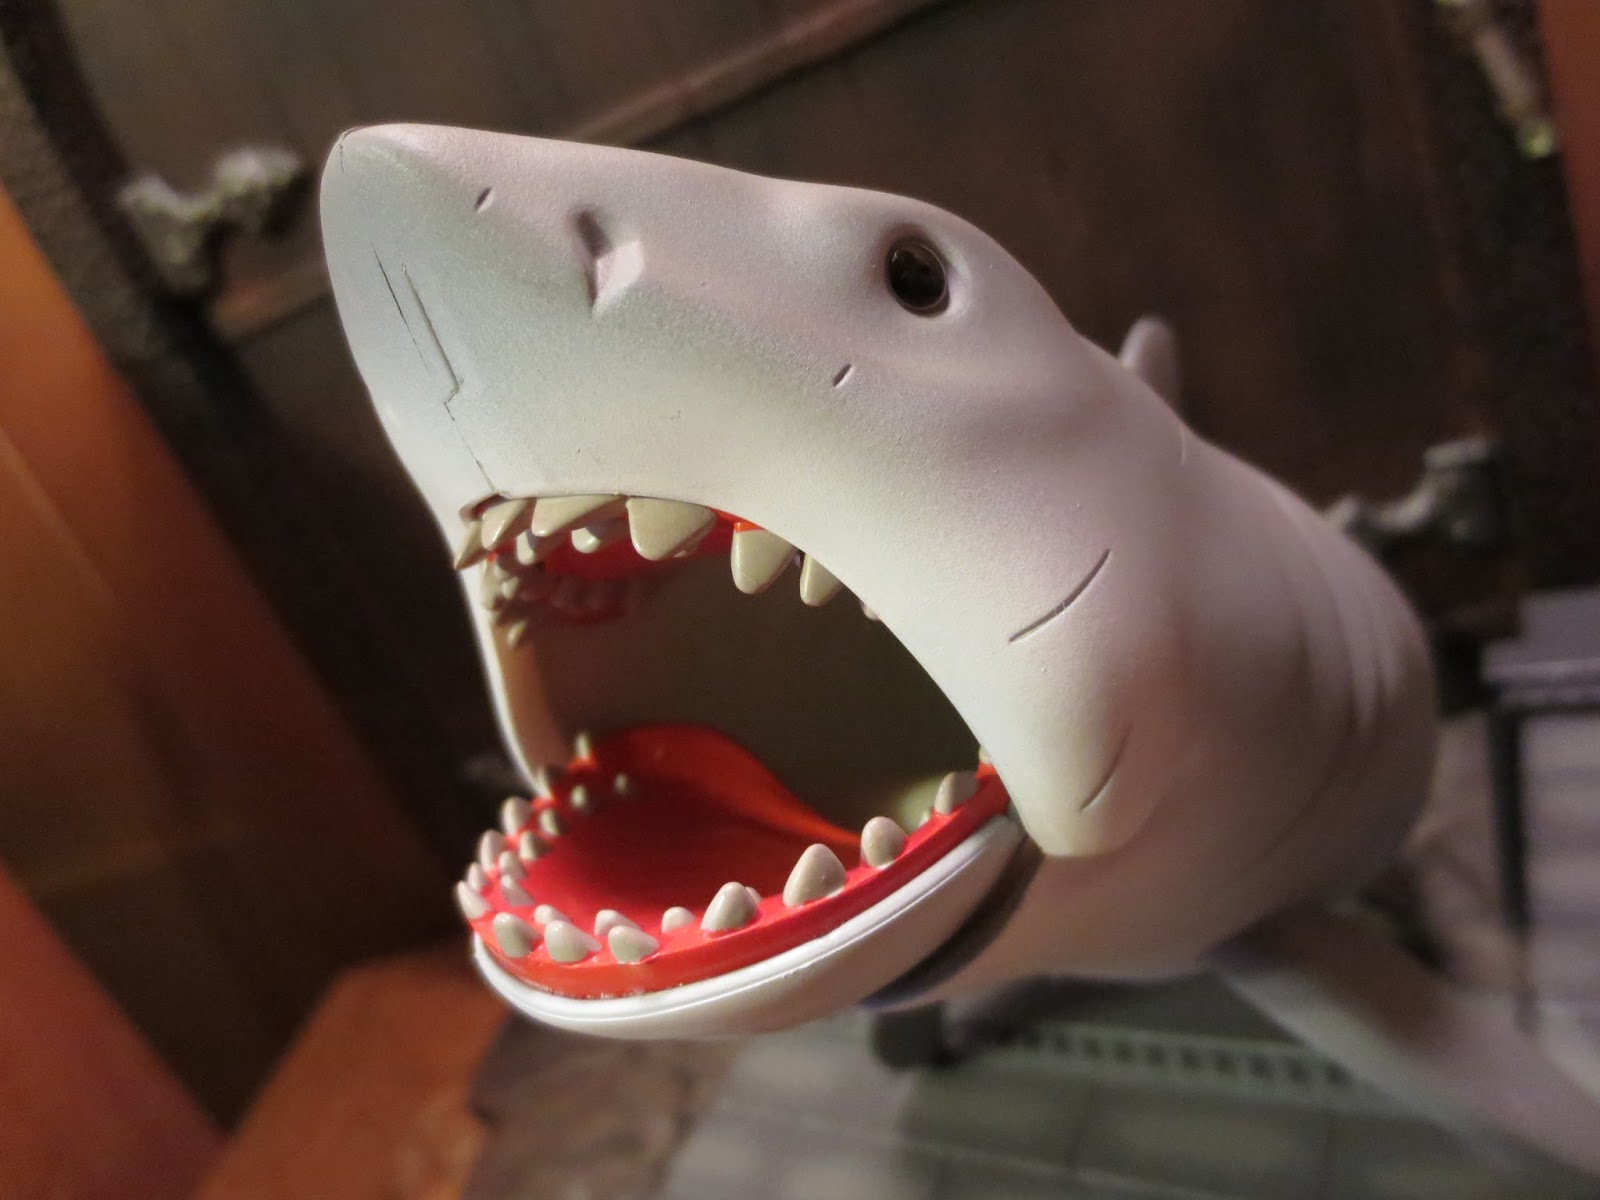 Great White Shark Jaws Toys : Action figure barbecue re halloween special great white